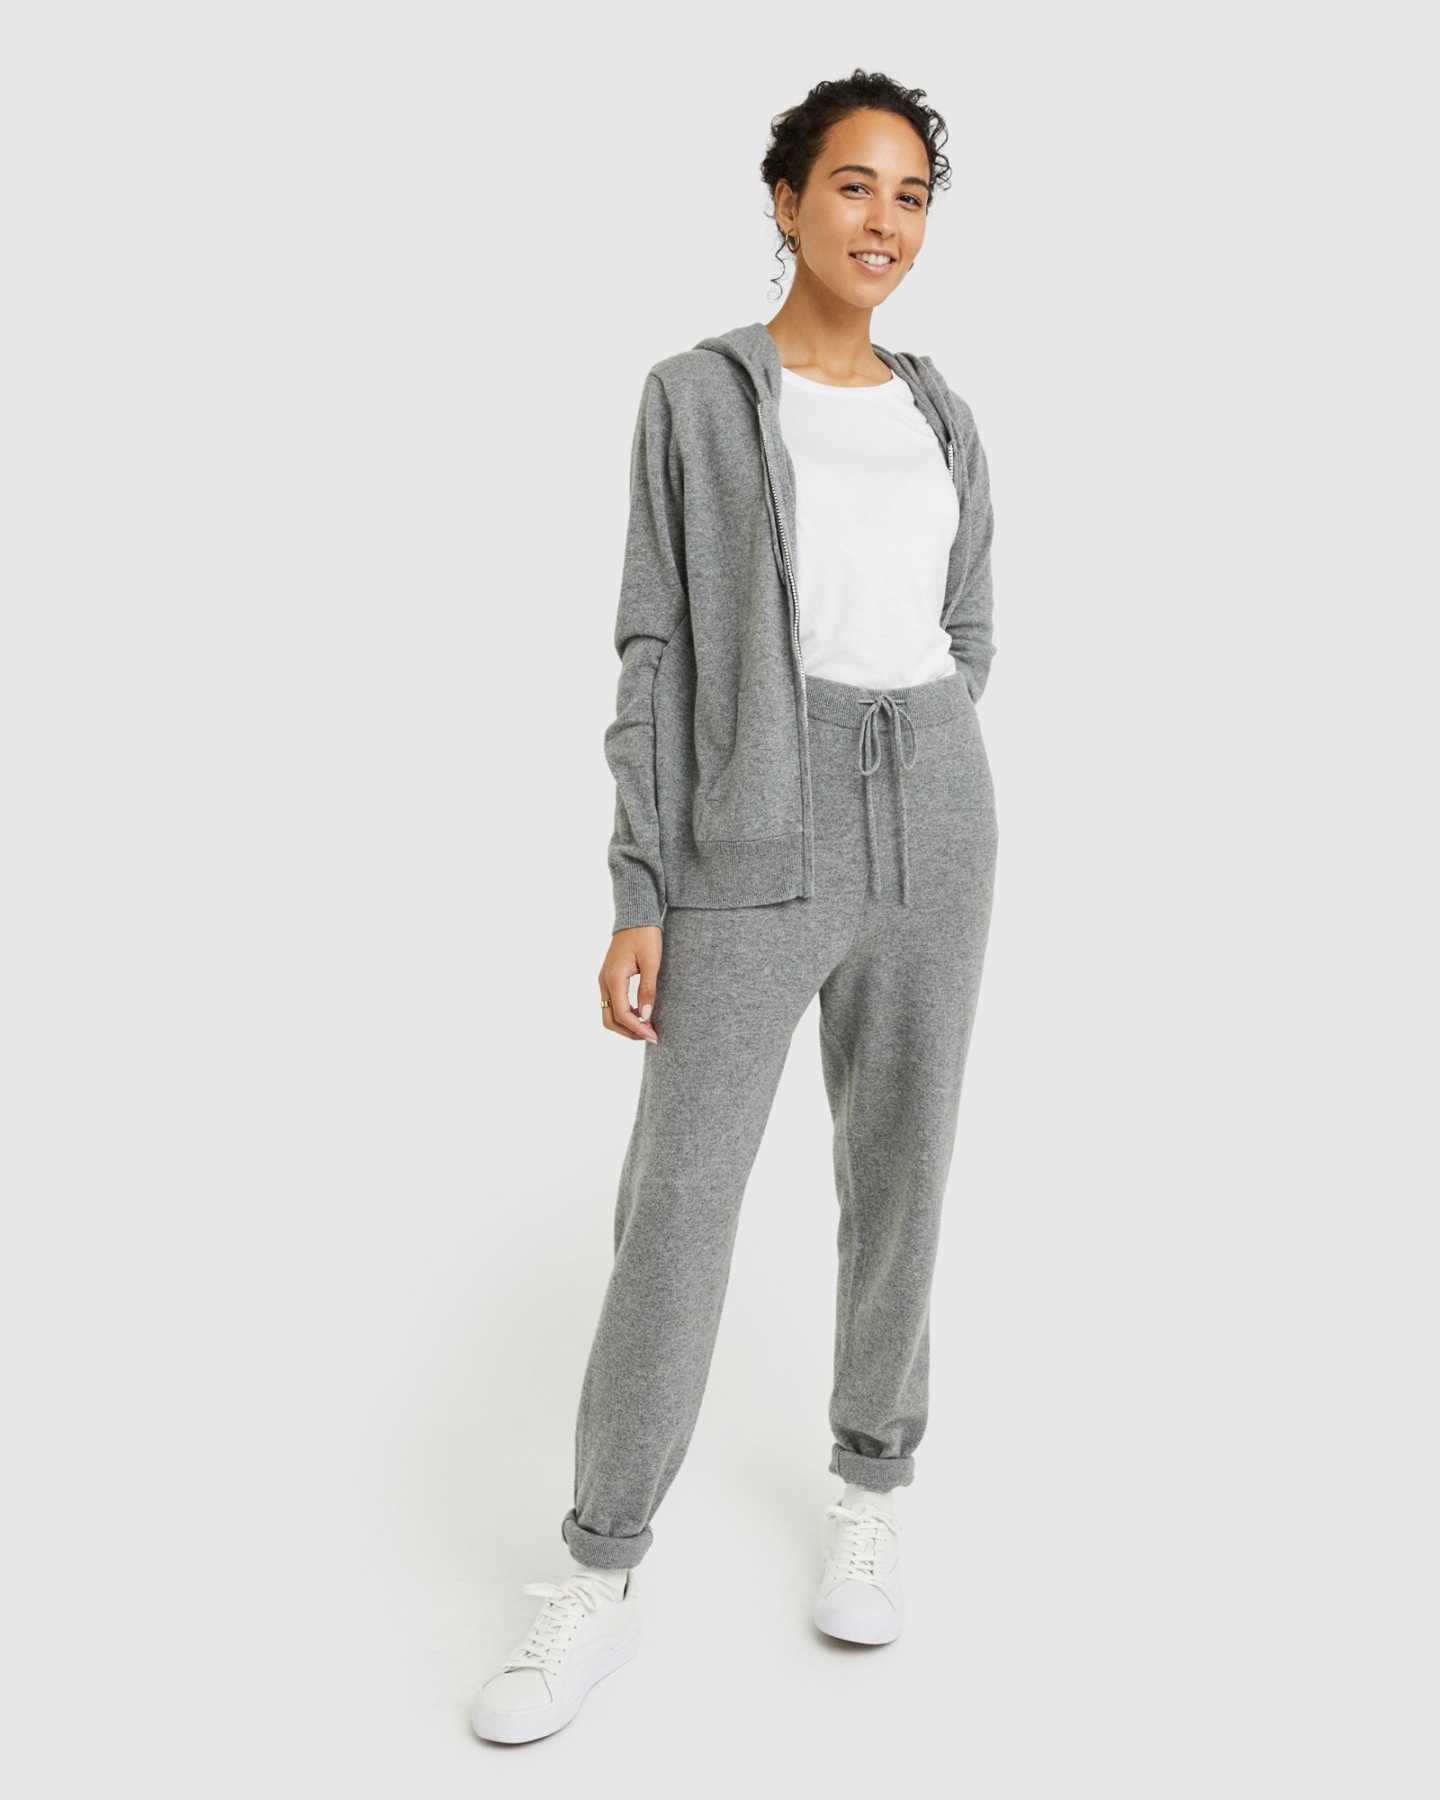 Woman wearing grey cashmere zip hoodie and matching cashmere sweatpants standing